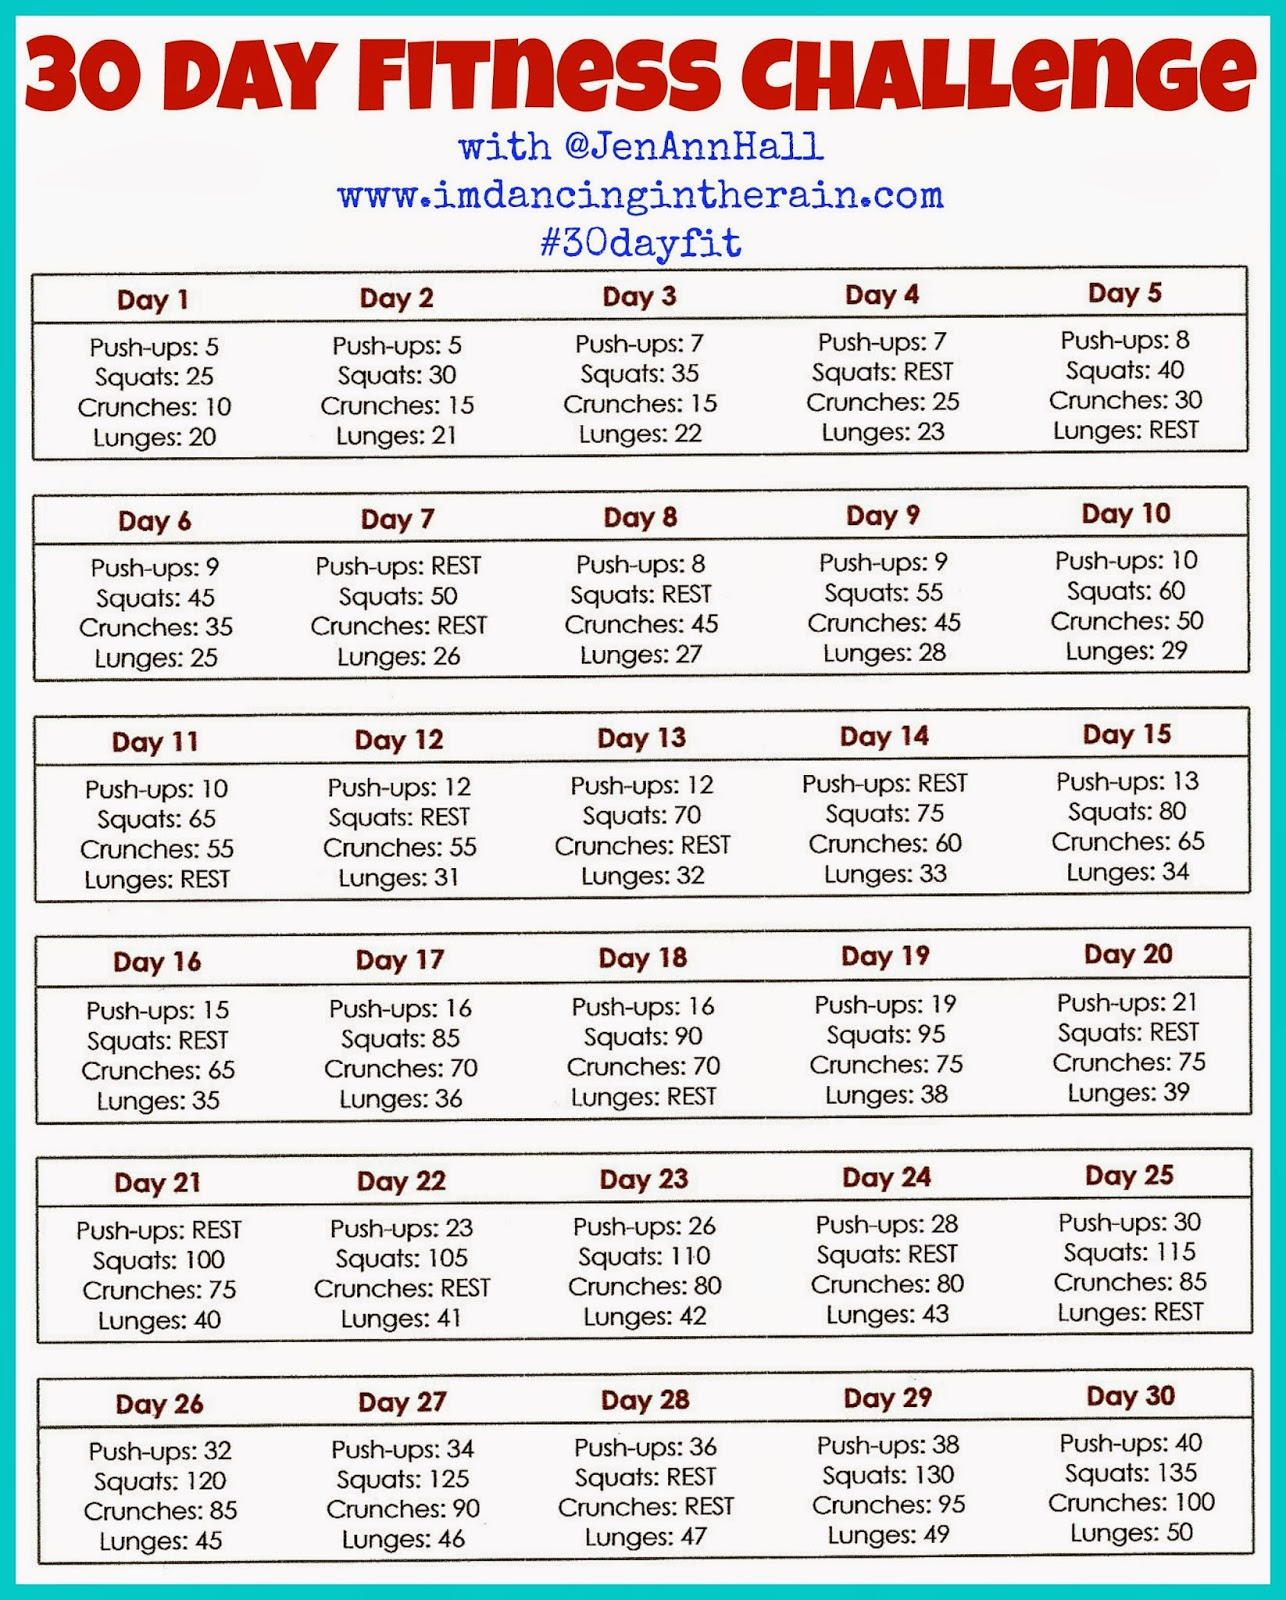 Dancing in the Rain: 30 Day Fitness Challenge